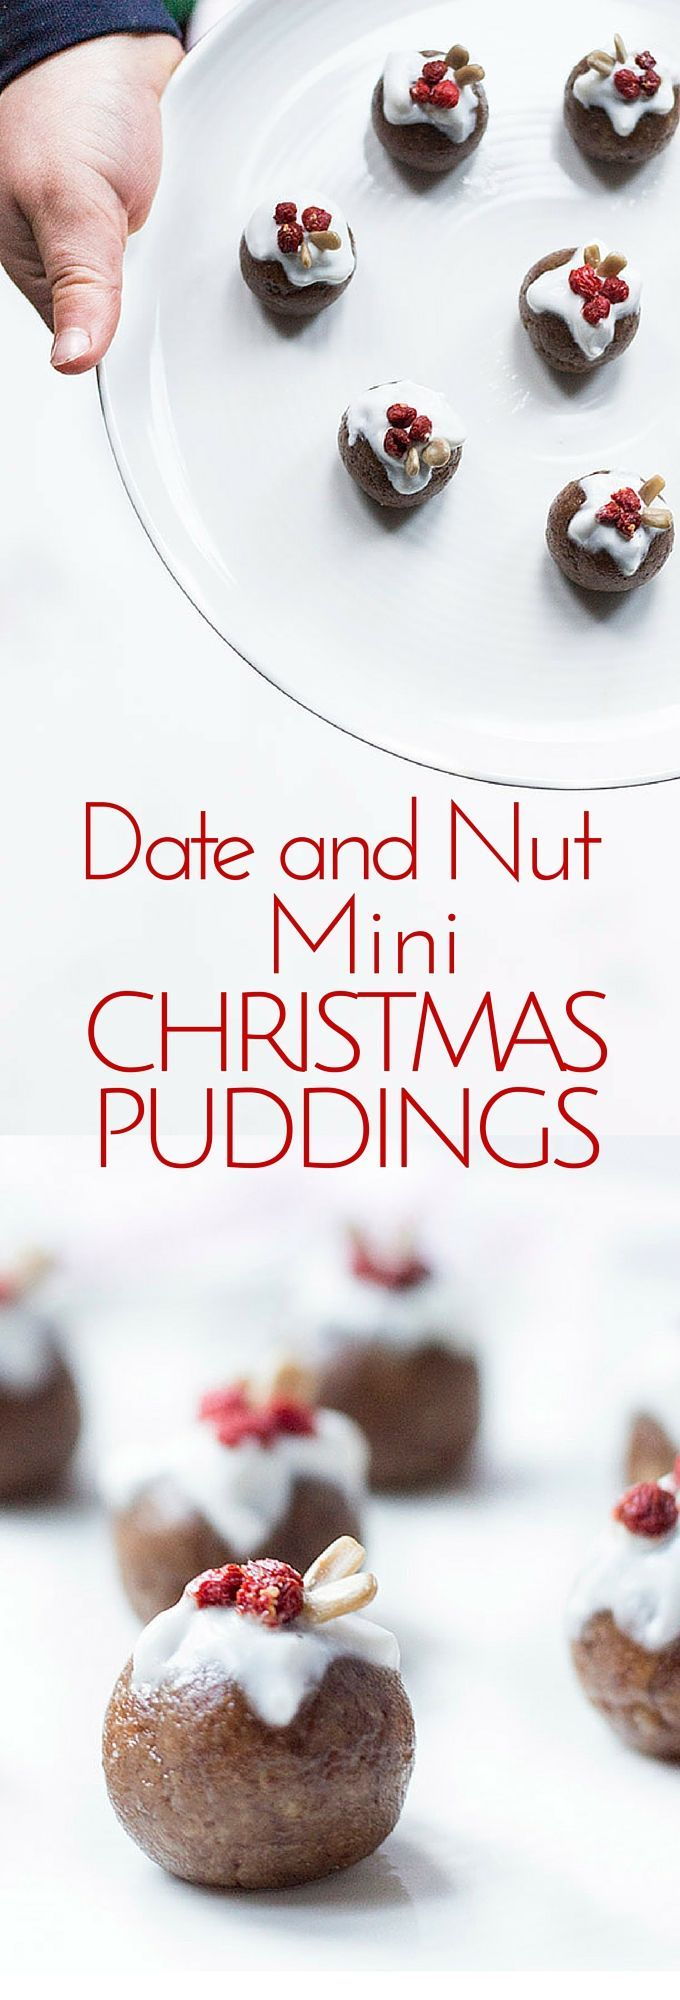 Date and Nut Mini Christmas Puddings. No refined sugar. Christmas spiced date and nut balls topped with a little greek yoghurt, goji berries and seeds. Great Christmas Kids Snack.